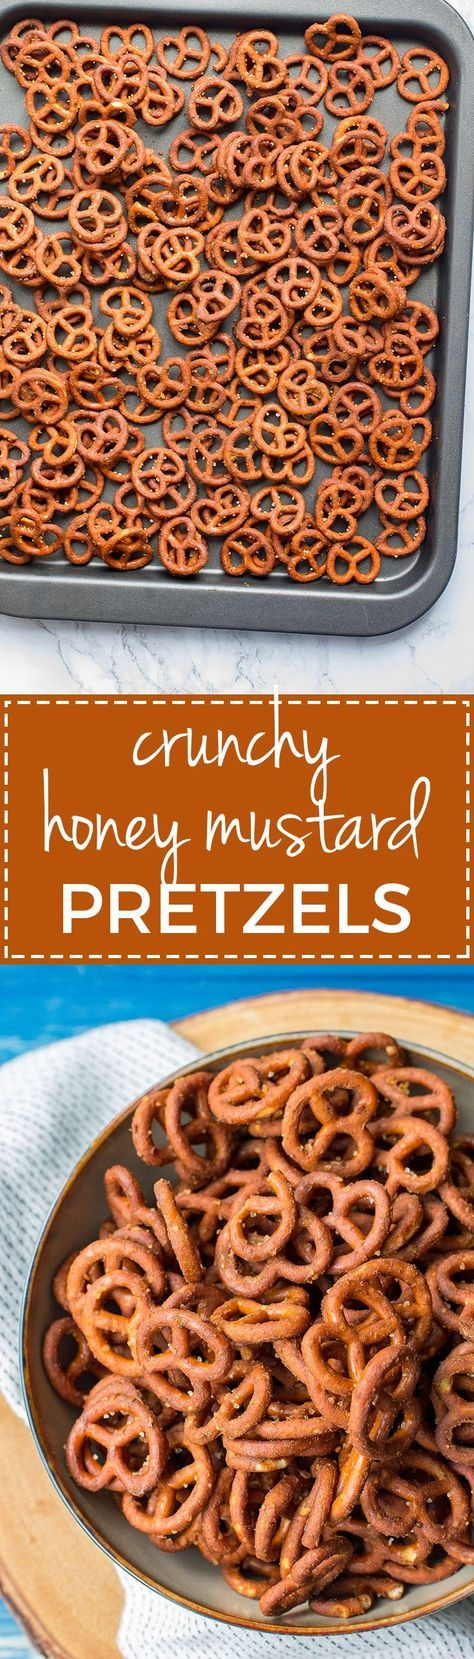 Crunchy honey mustard pretzels | A simple, easy, addictive snack for game day or after school treats. #footballsnacks #seasonedpretzels